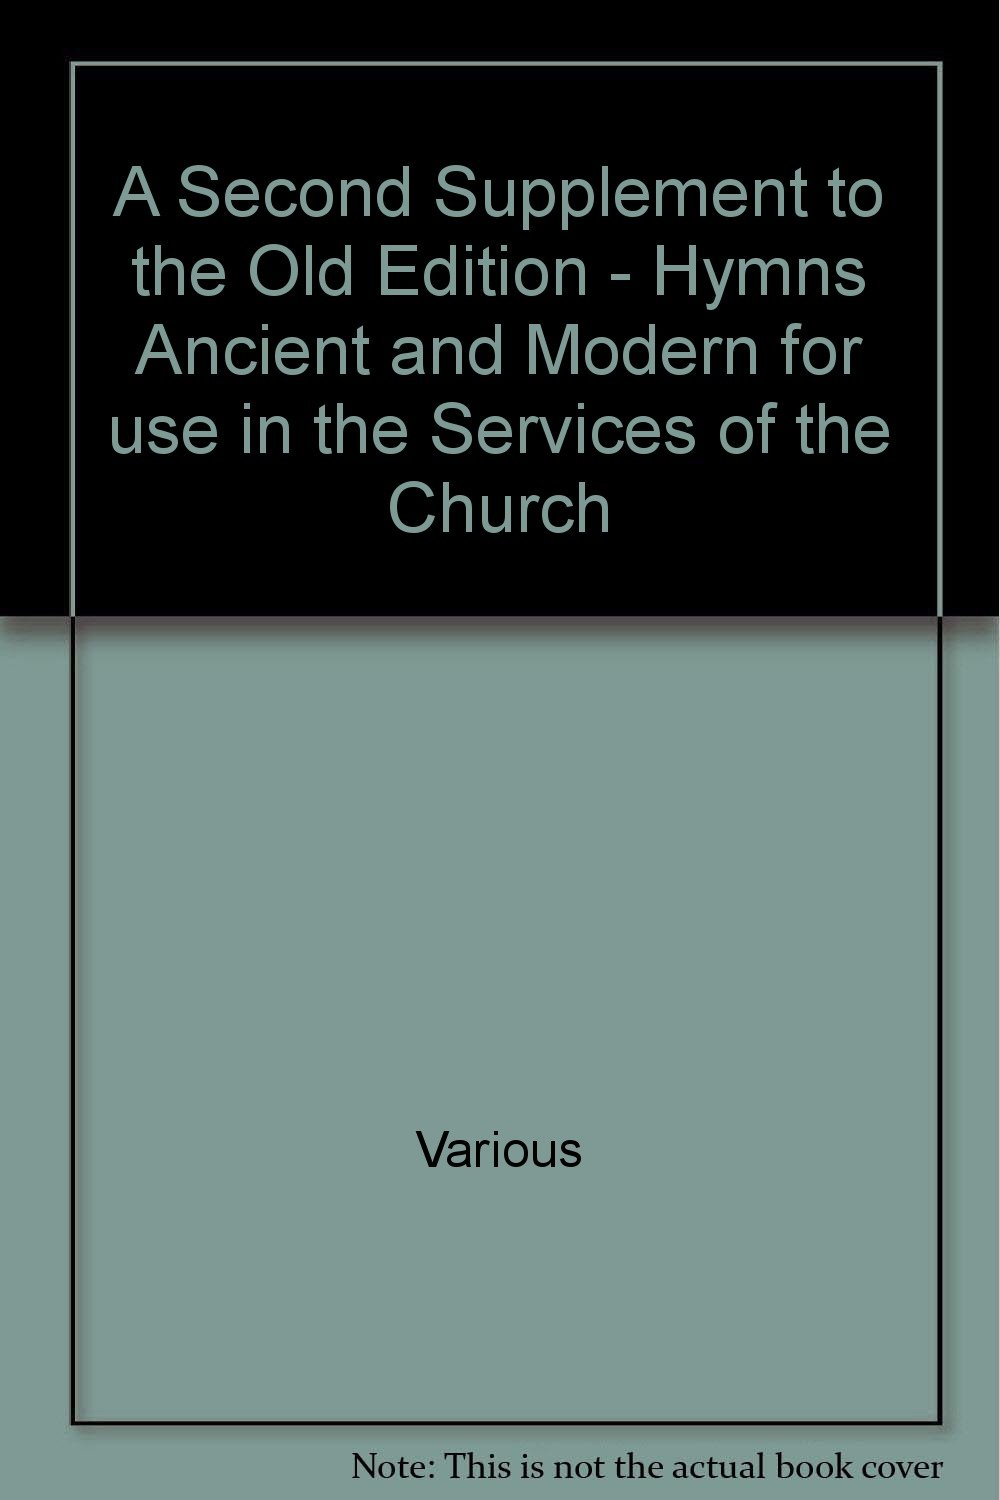 A Second Supplement to the Old Edition - Hymns Ancient and Modern for use  in the Services of the Church: Amazon.co.uk: Various: Books